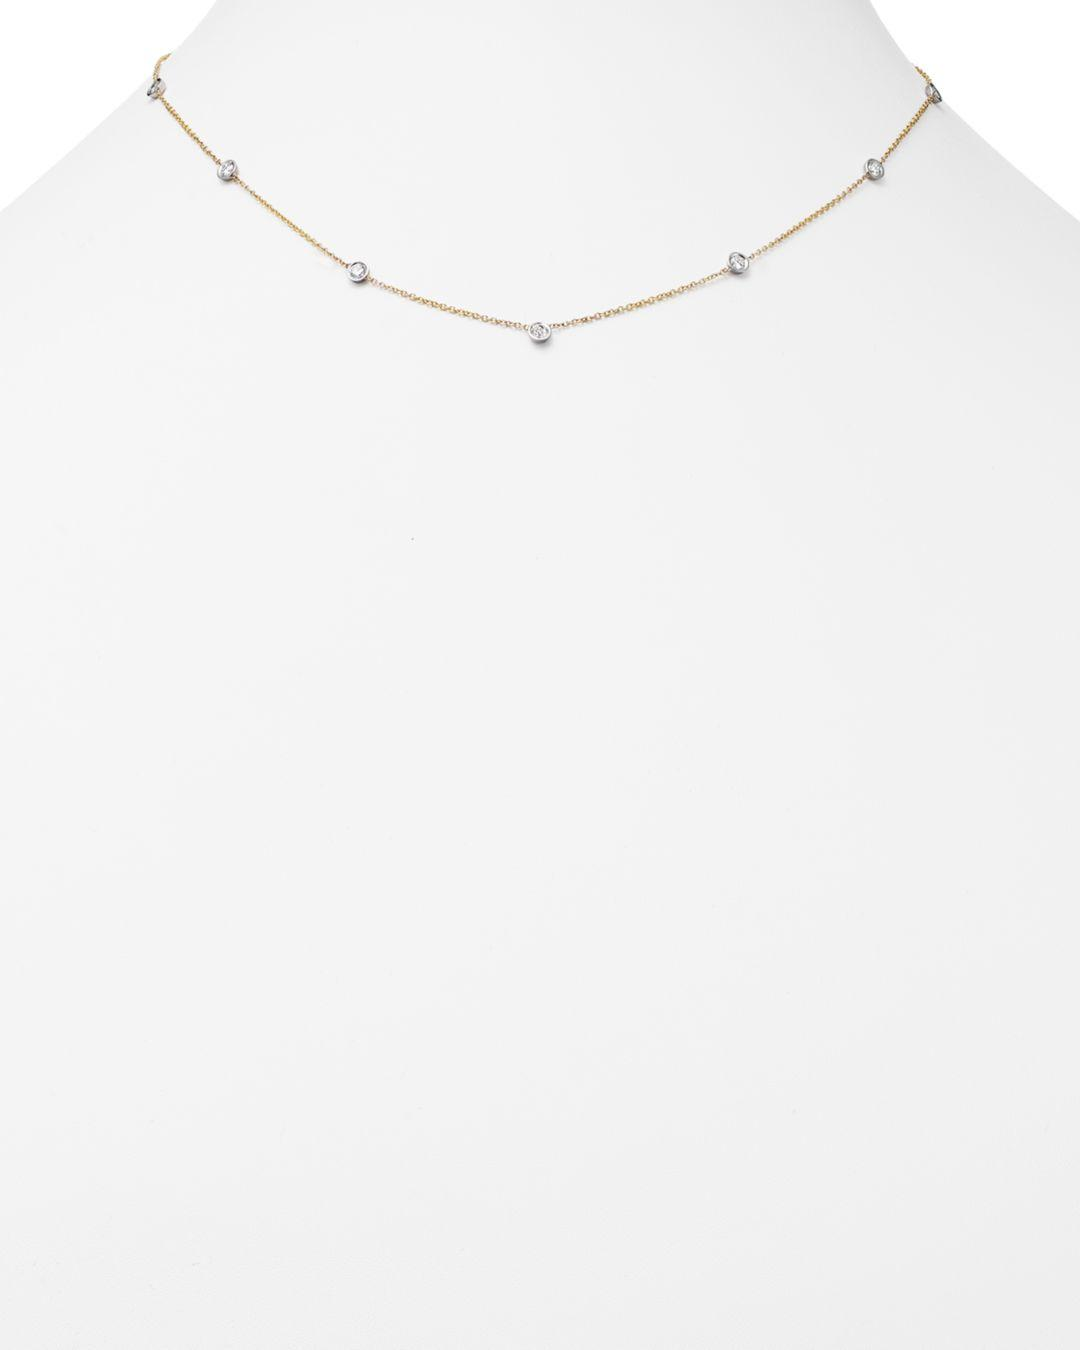 Bloomingdale's Diamond Station Necklace In 14k Yellow And White Gold in White/Gold (Metallic)